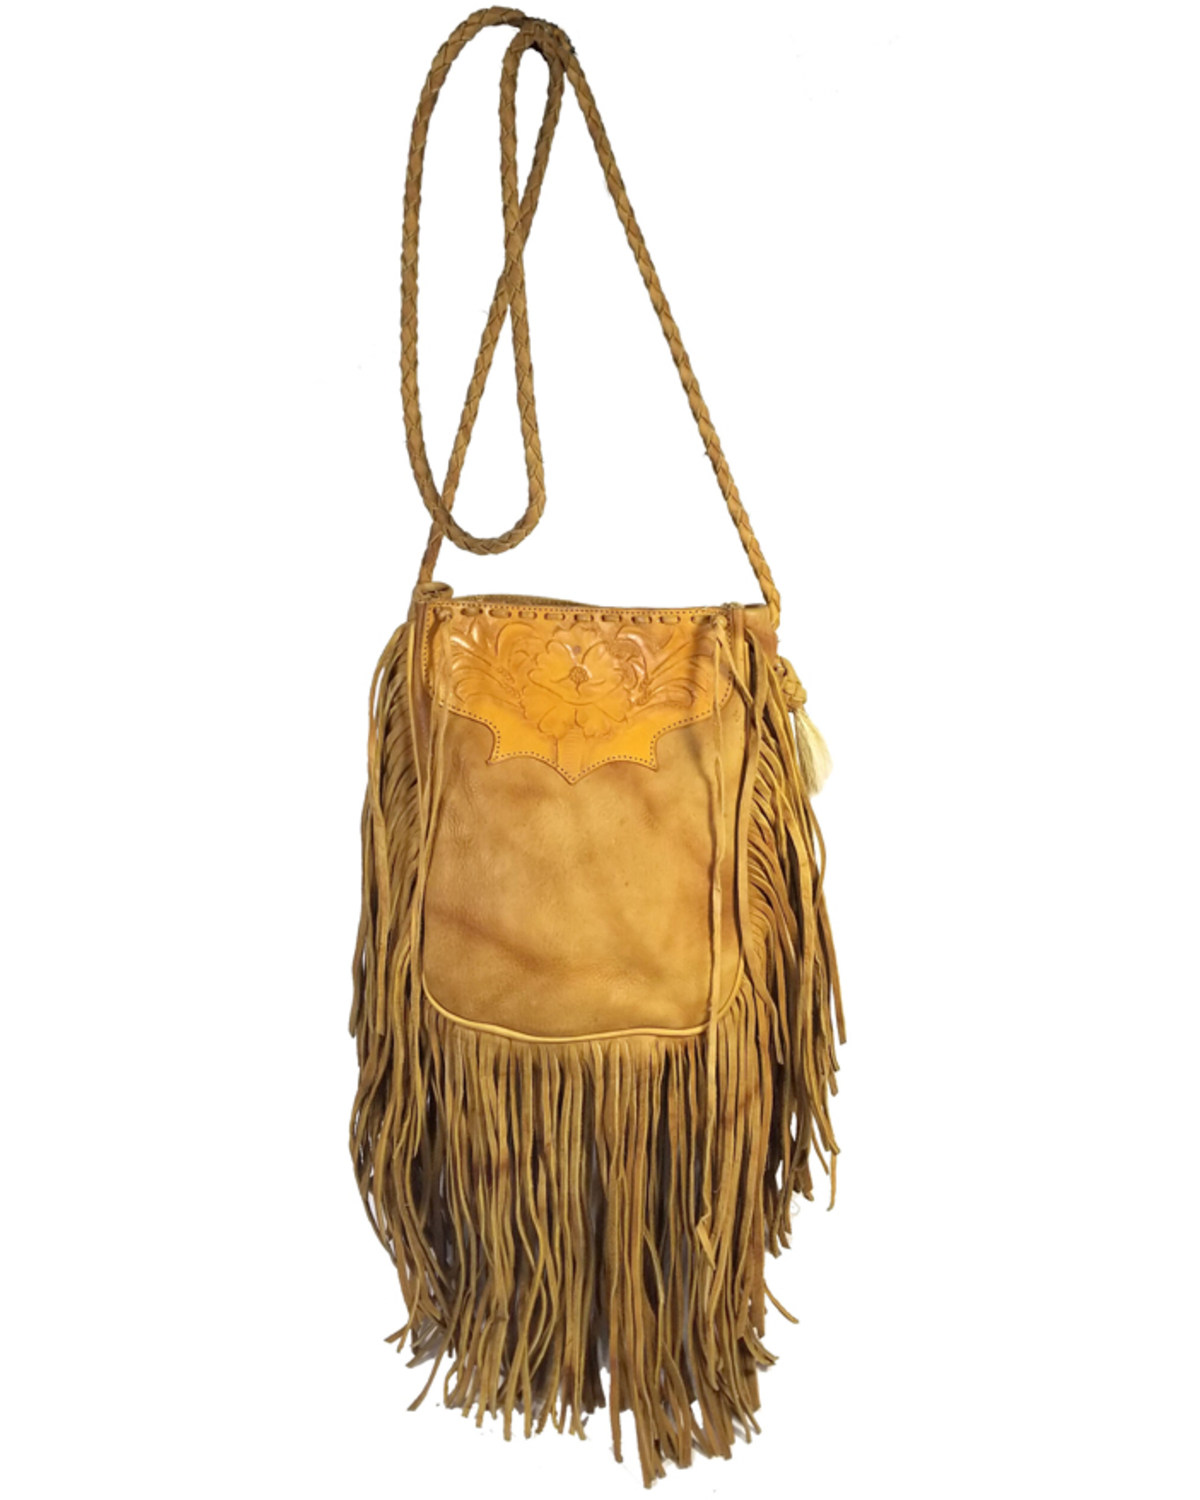 b954845c8624 Kobler Tooled Fringe Leather Handbag